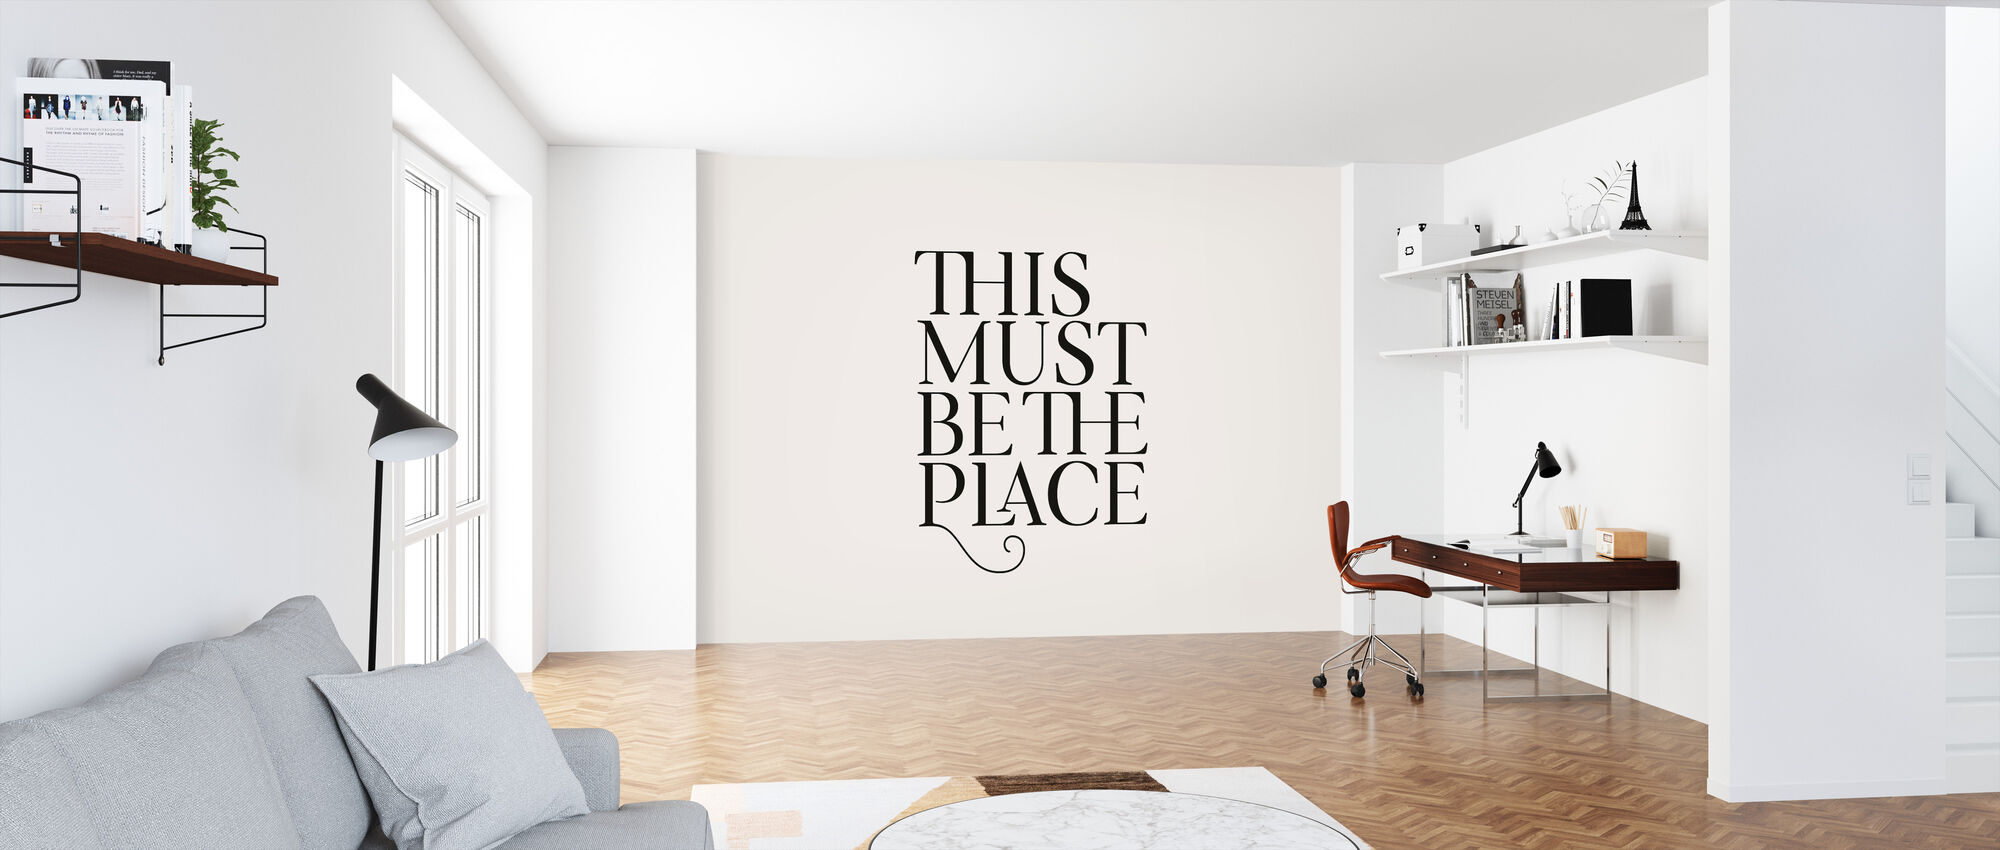 This Must Be the Place - Wallpaper - Office